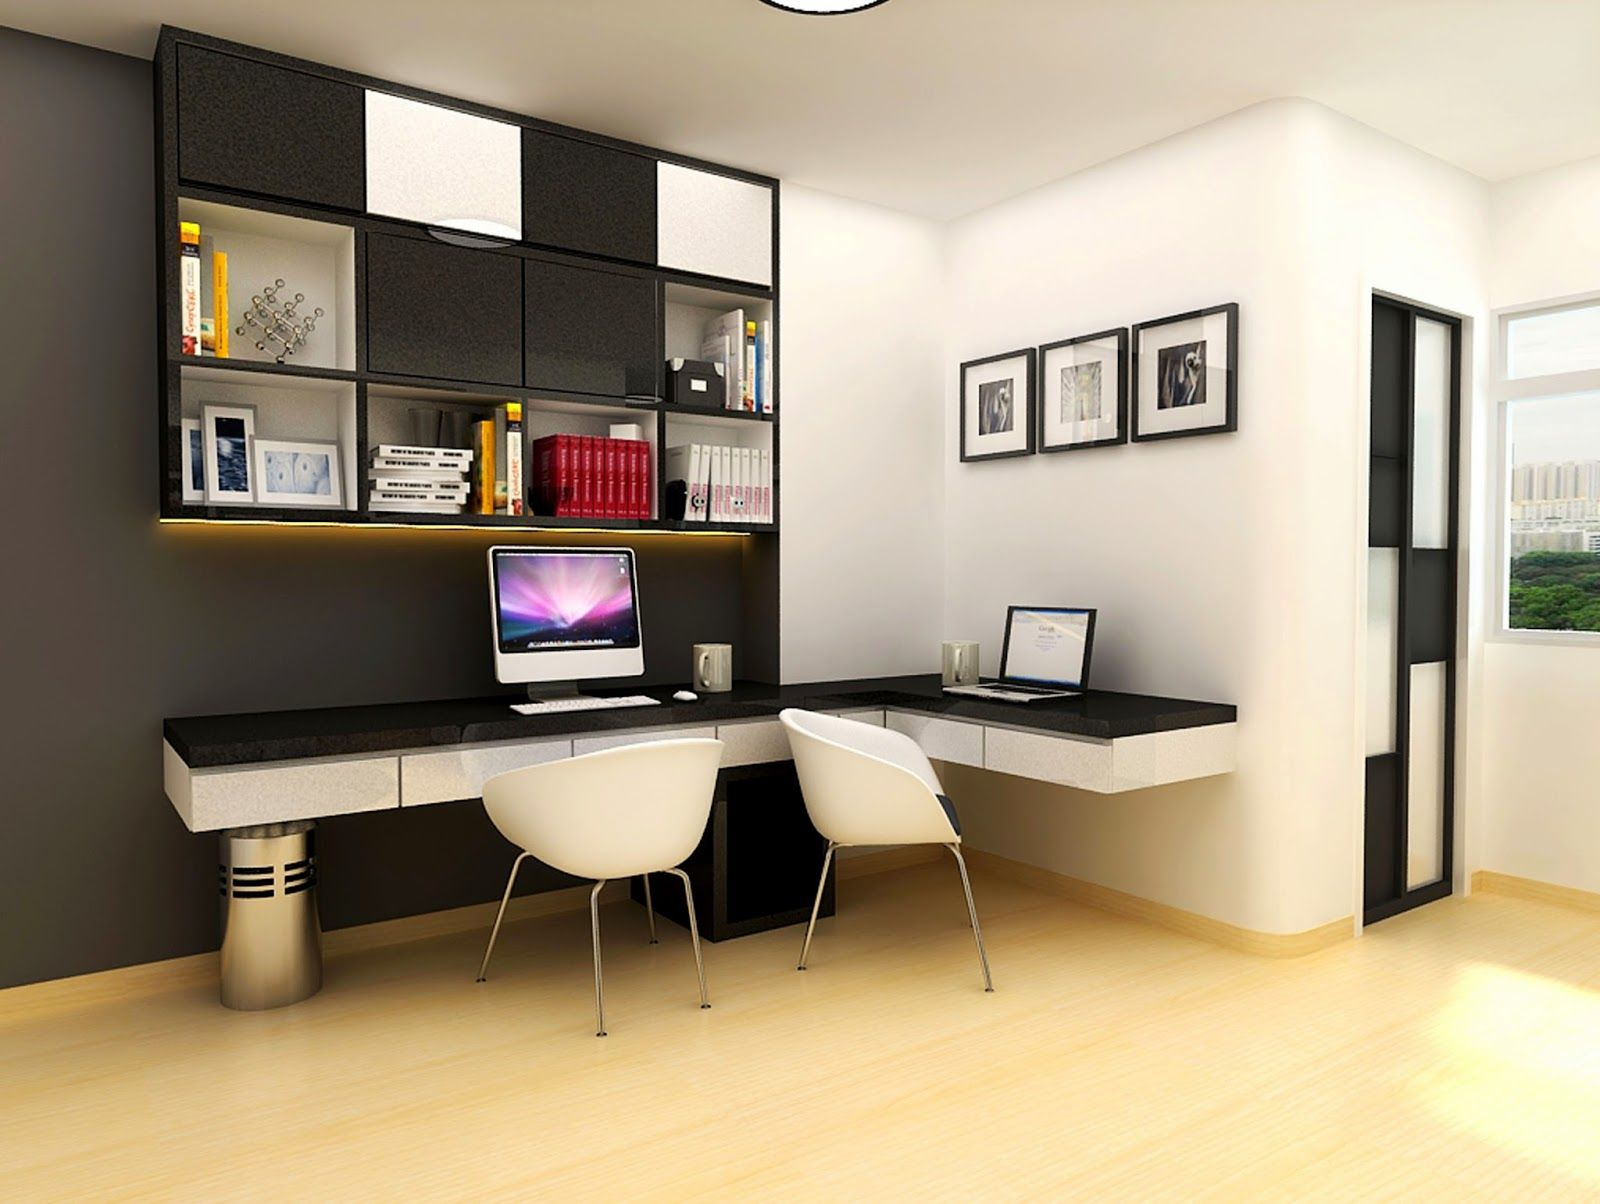 Design inspirations 10 neat yet fun study room ideas for In room designs